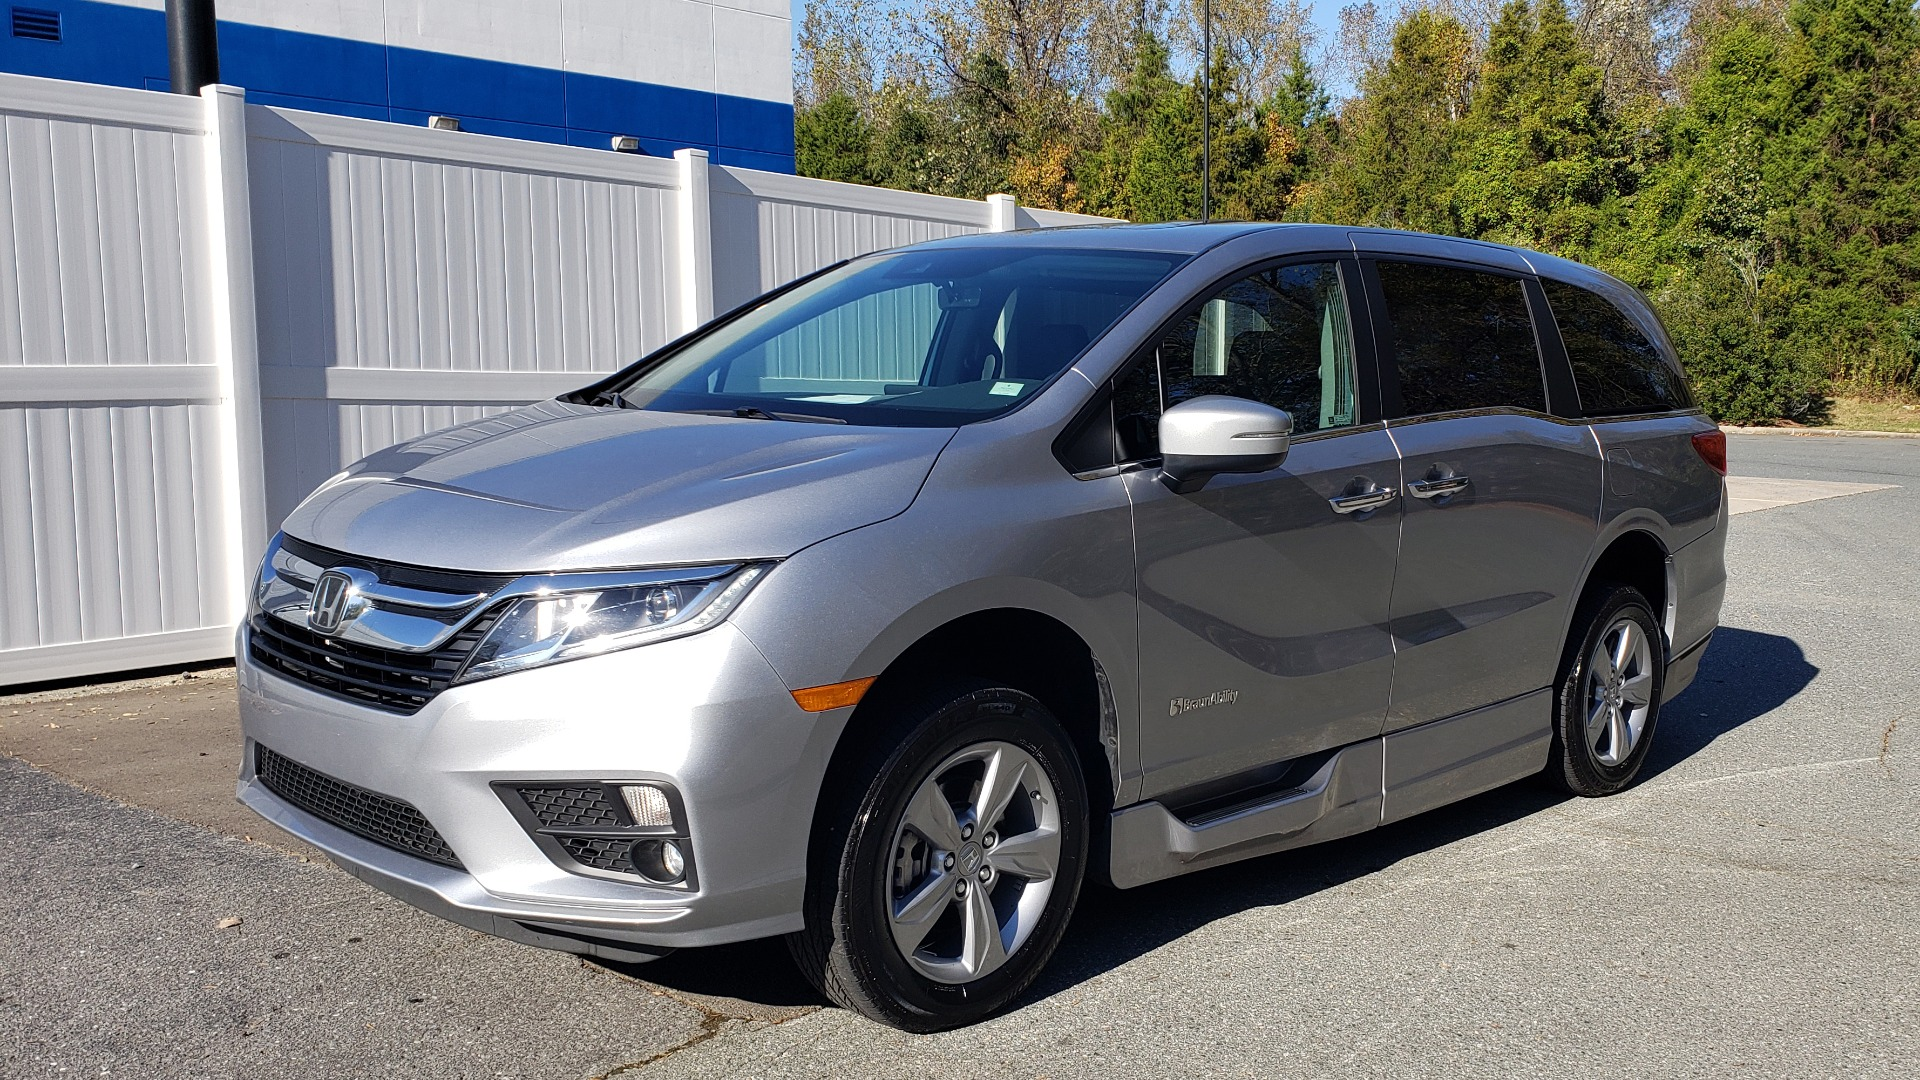 Used 2019 Honda ODYSSEY EX-L BRAUNABILITY / NAV / RES / LKA / BLUE-RAY / SUNROOF / REARVIEW for sale $49,999 at Formula Imports in Charlotte NC 28227 1